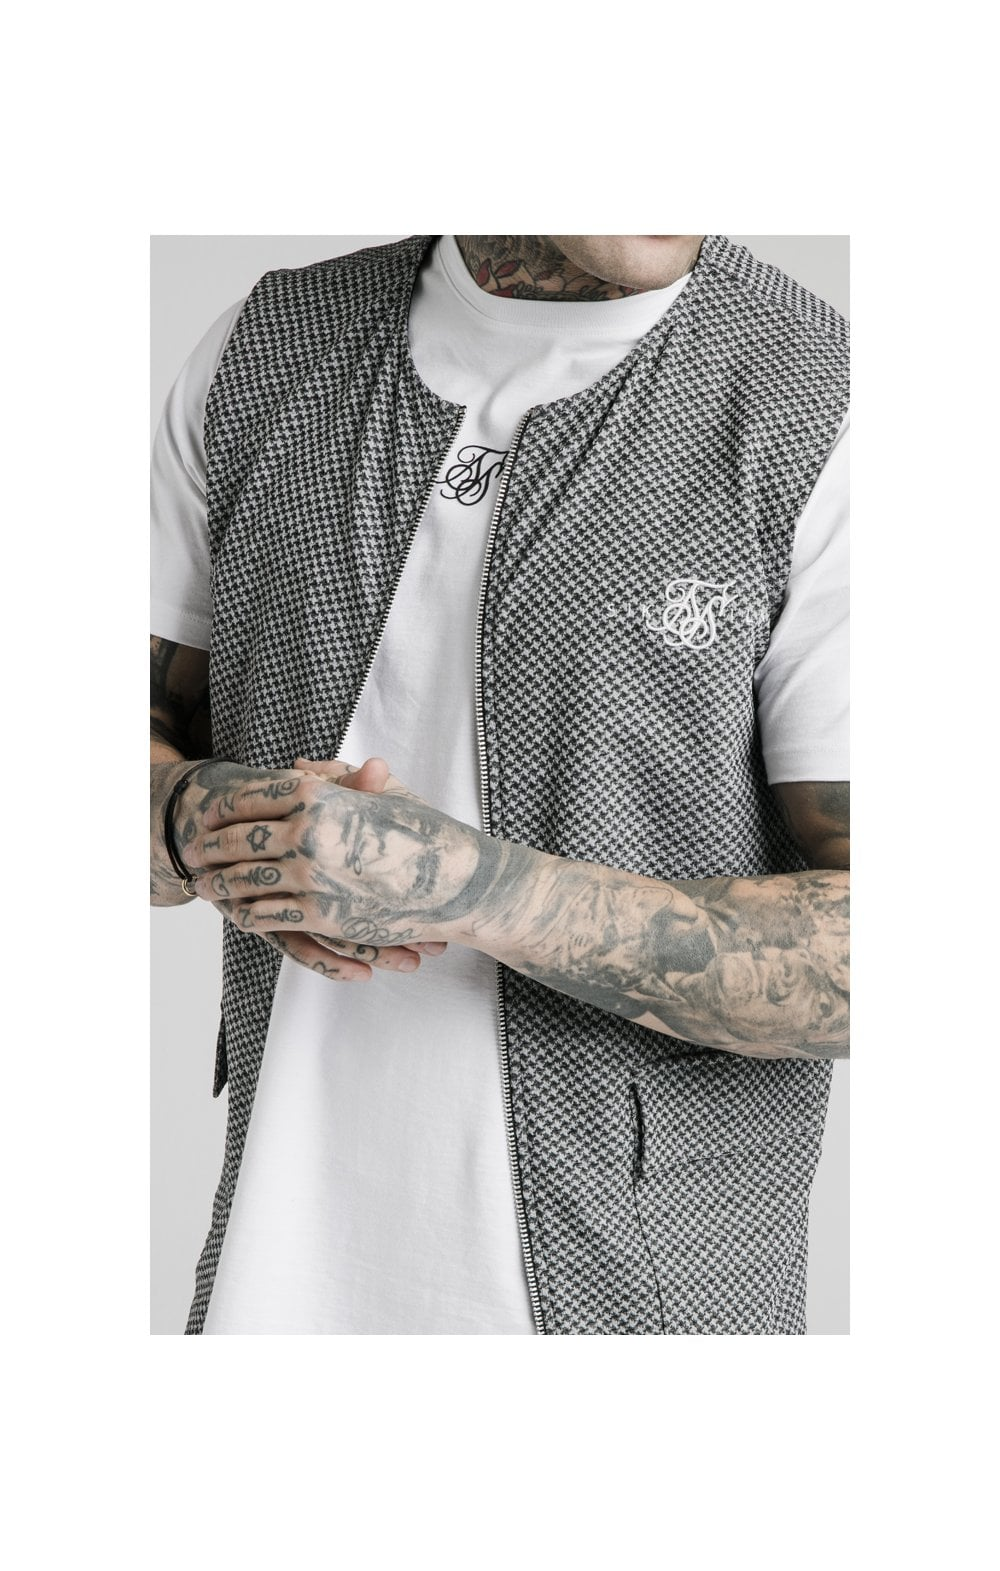 SikSilk Smart Wear Vest - Black & White Dogtooth